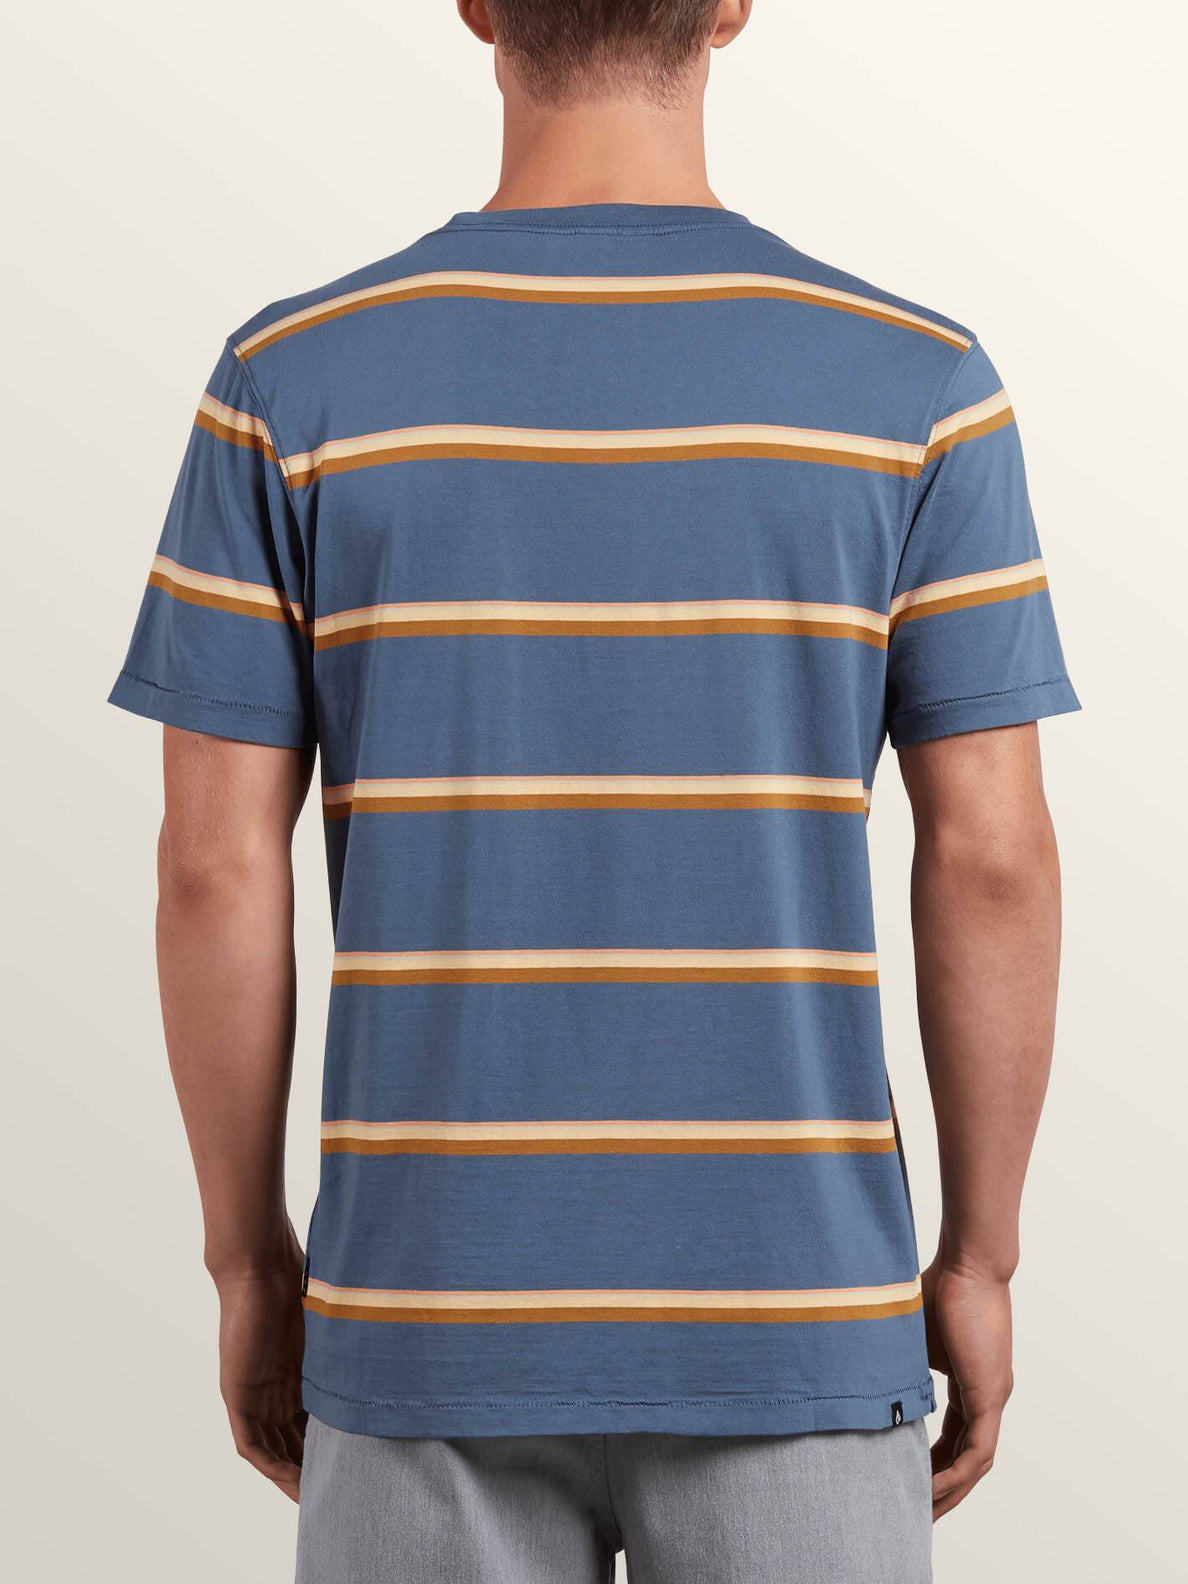 Sheldon Crew Tee In Deep Blue, Back View